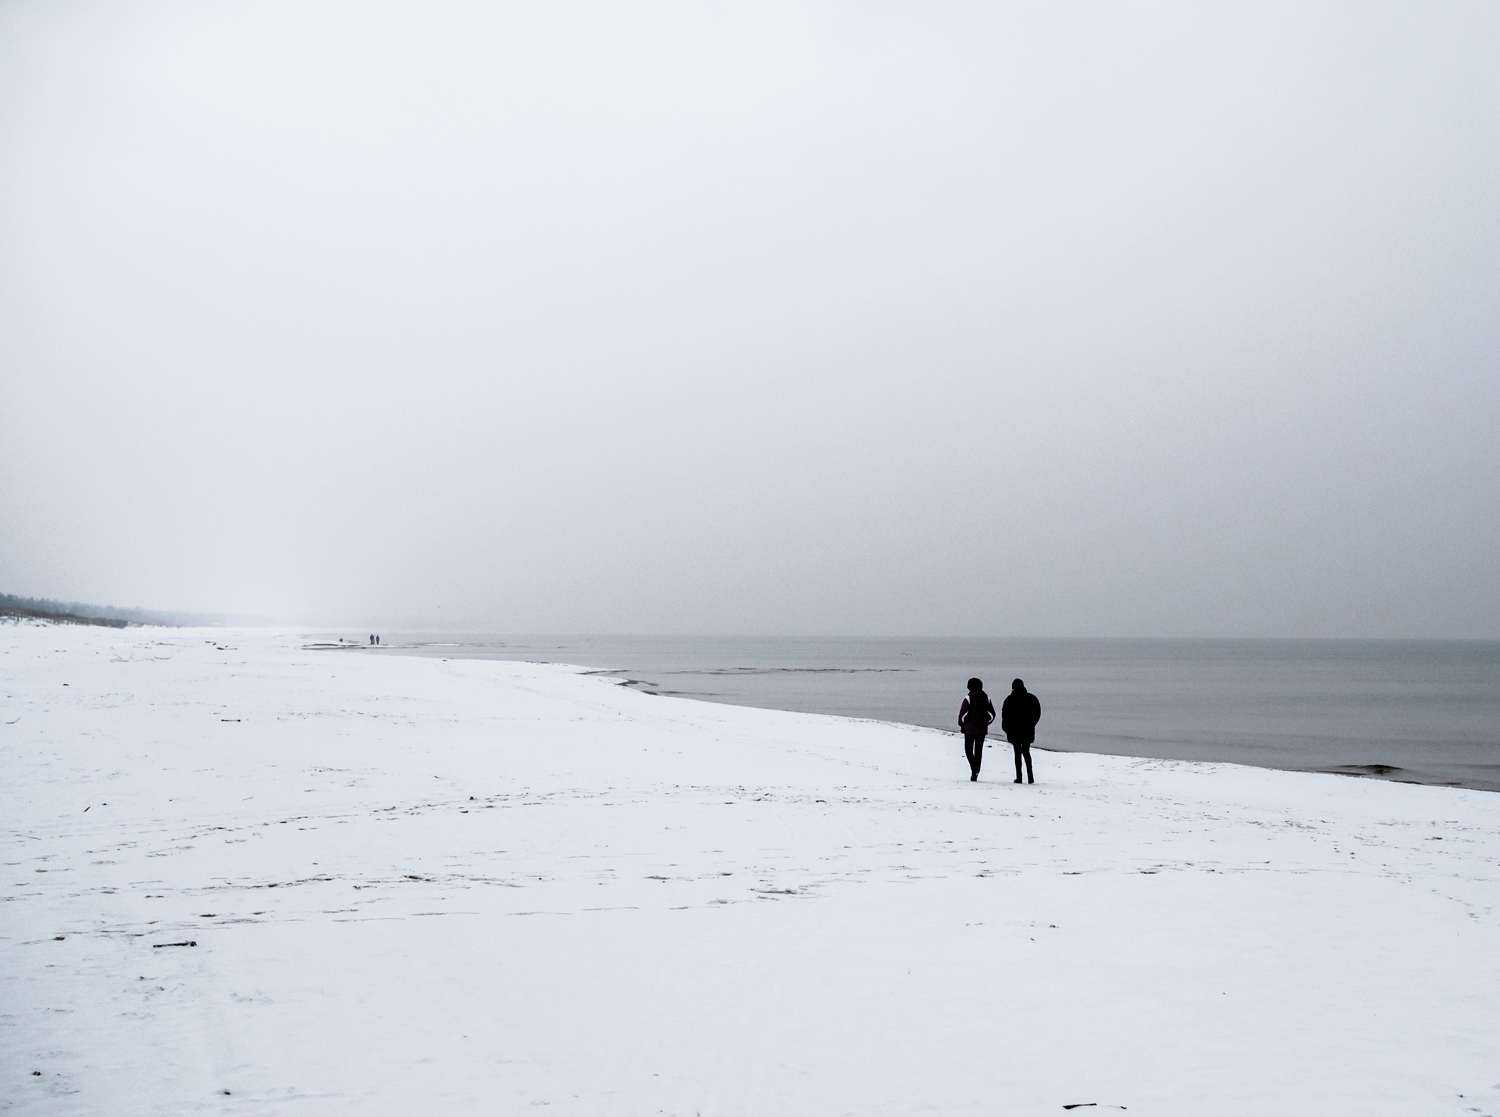 beach winter Poland north winter is coming mindfulness relax enjoy